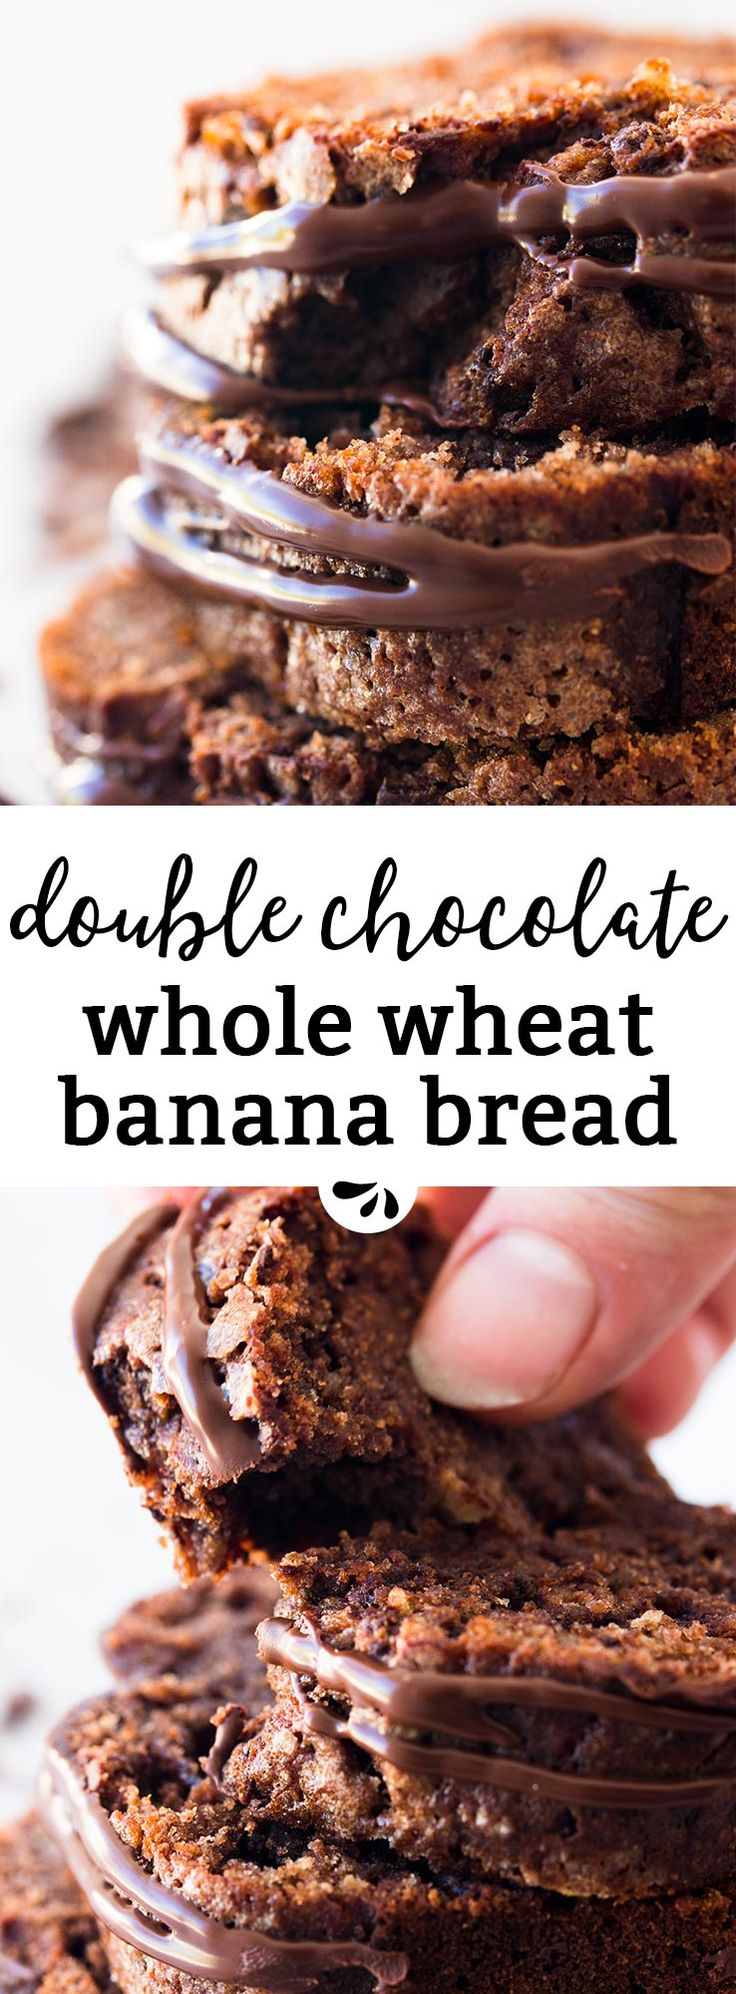 Easy and delicious, this Whole Wheat Double Chocolate Banana Bread whips up in a single bowl! You can even freeze it to always have a delicious snack on hand. It's made with Greek yogurt, oil and less sugar than traditional banana bread recipes. Perfect for busy school mornings, as a back to school treat or just because - double chocolate banana bread is always a good idea! The recipe is so simple, you can also make it as a fun weekend baking project with the kids. They'll love to help!